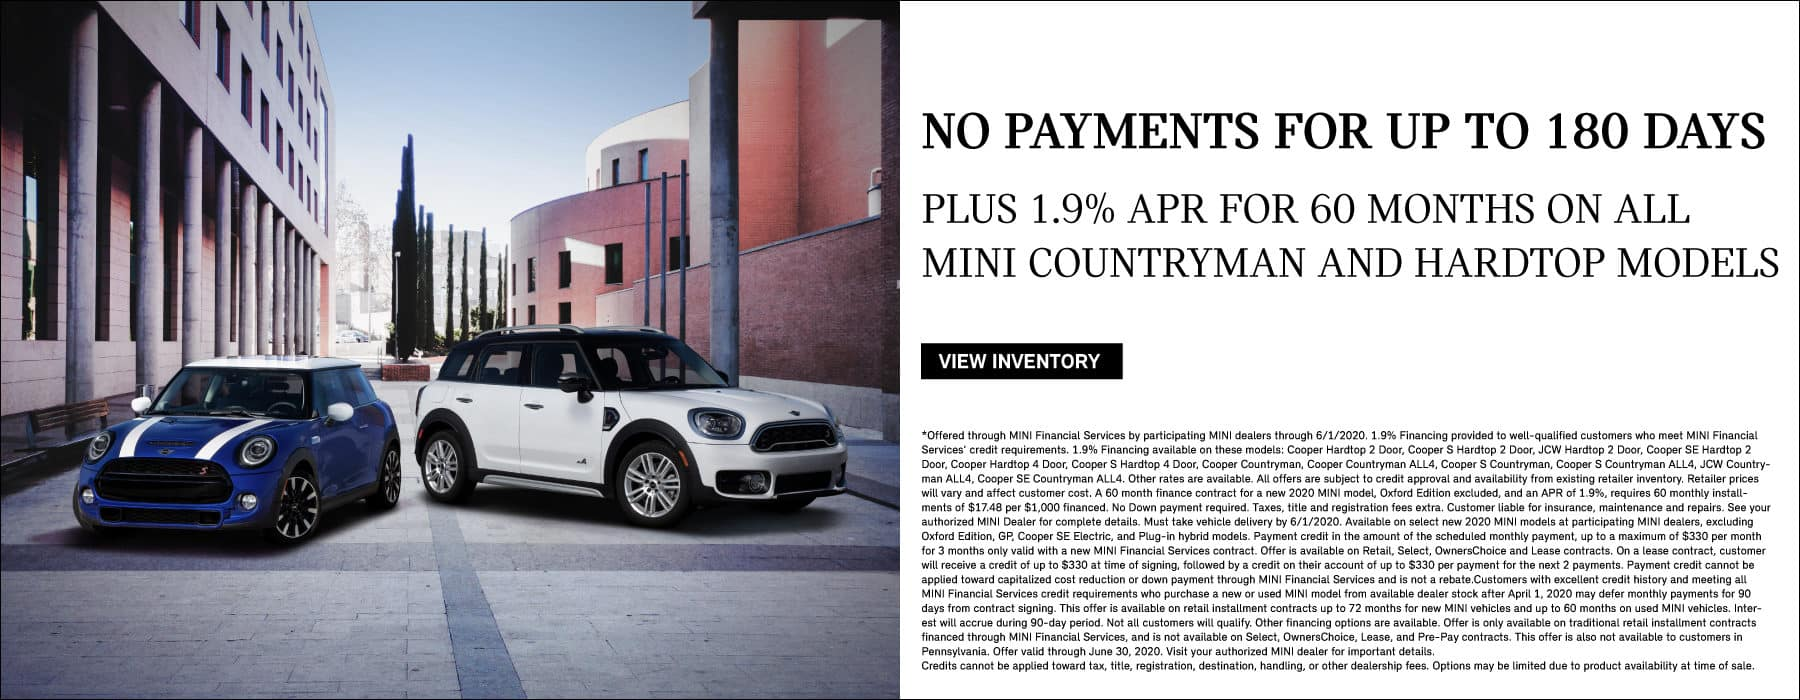 No payments for up to 180 days. Plus 1.9% for 60 months on all MINI Countryman and Hardtop models.